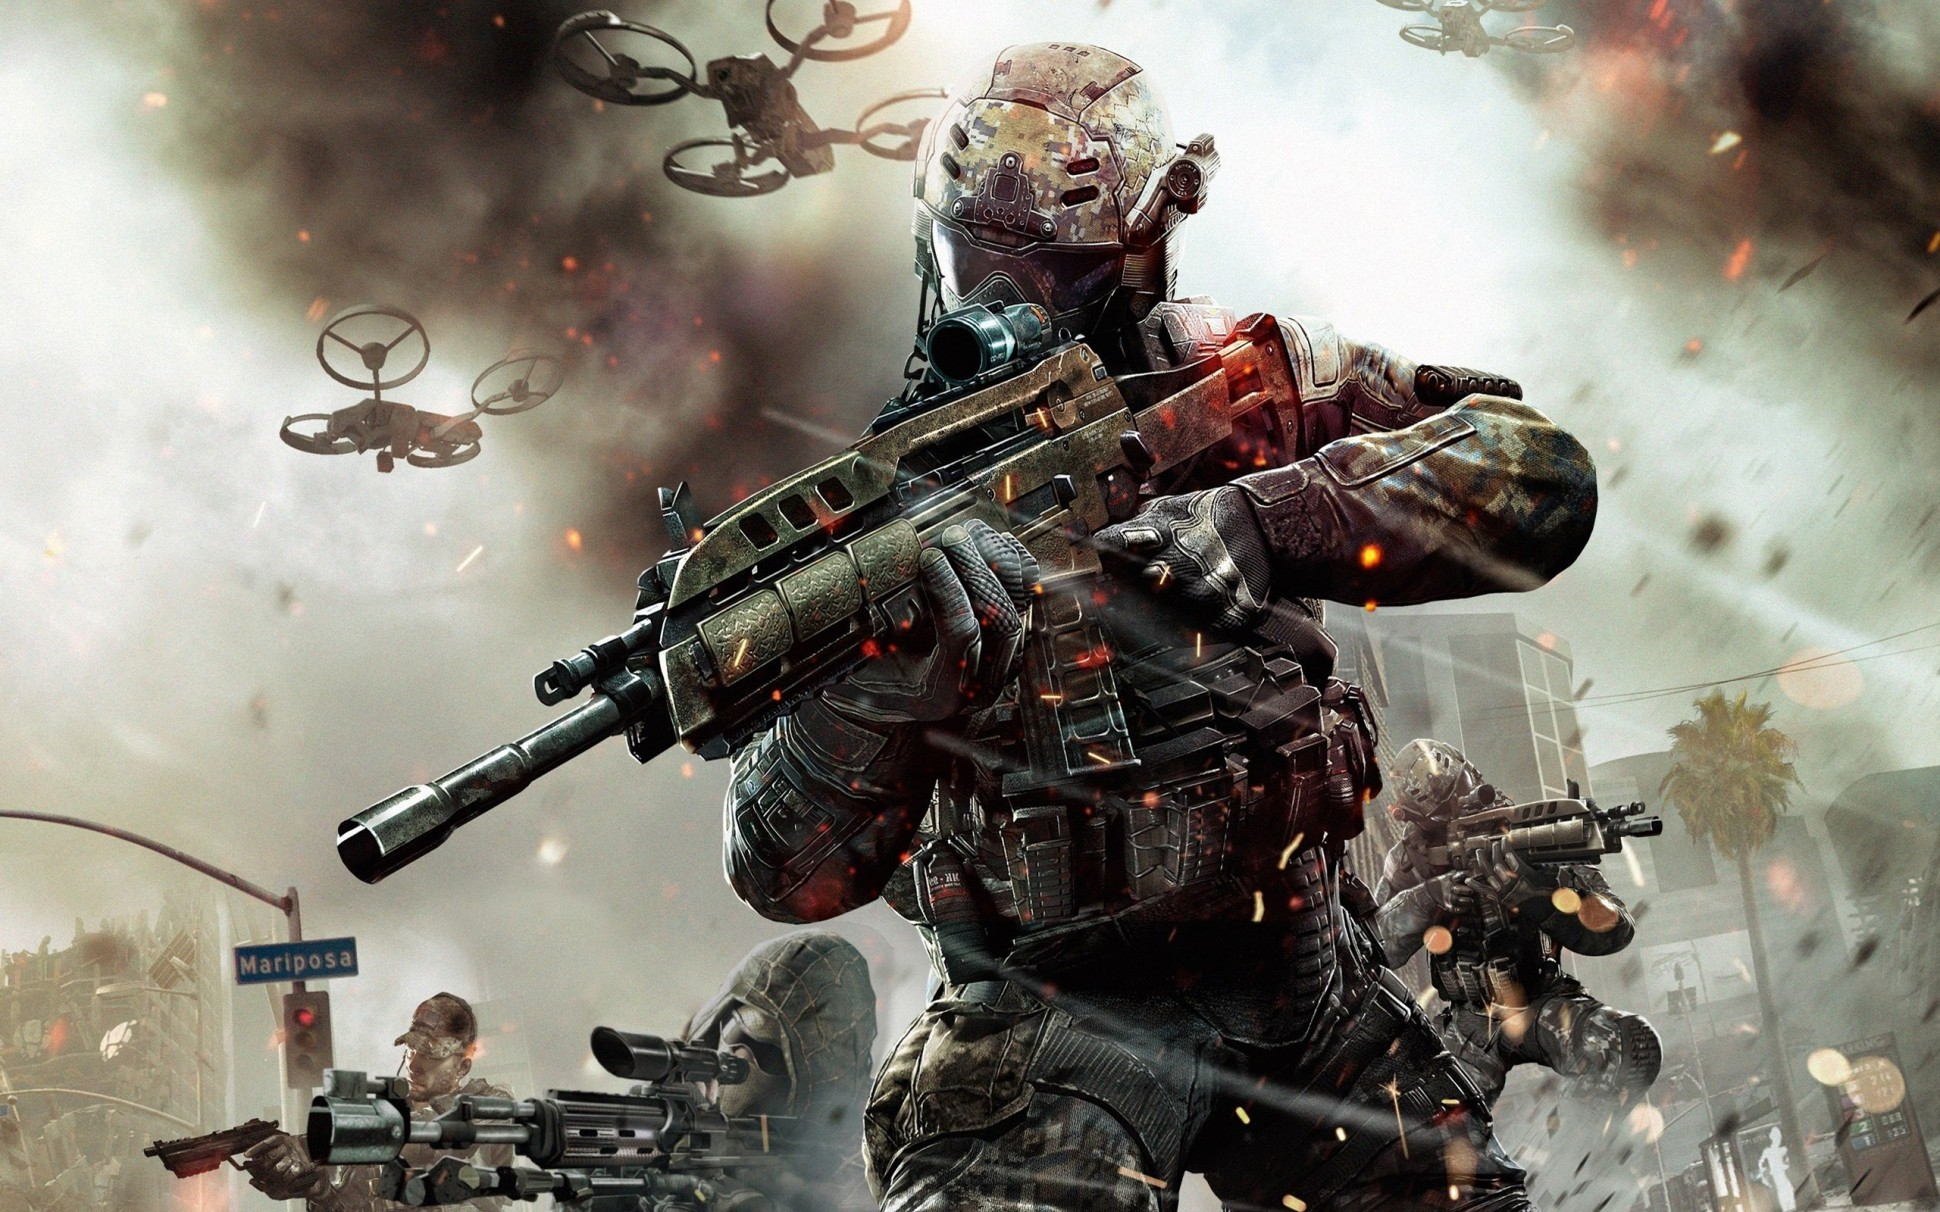 Call Of Duty Black Ops 3 Launch Gameplay Trailer Released